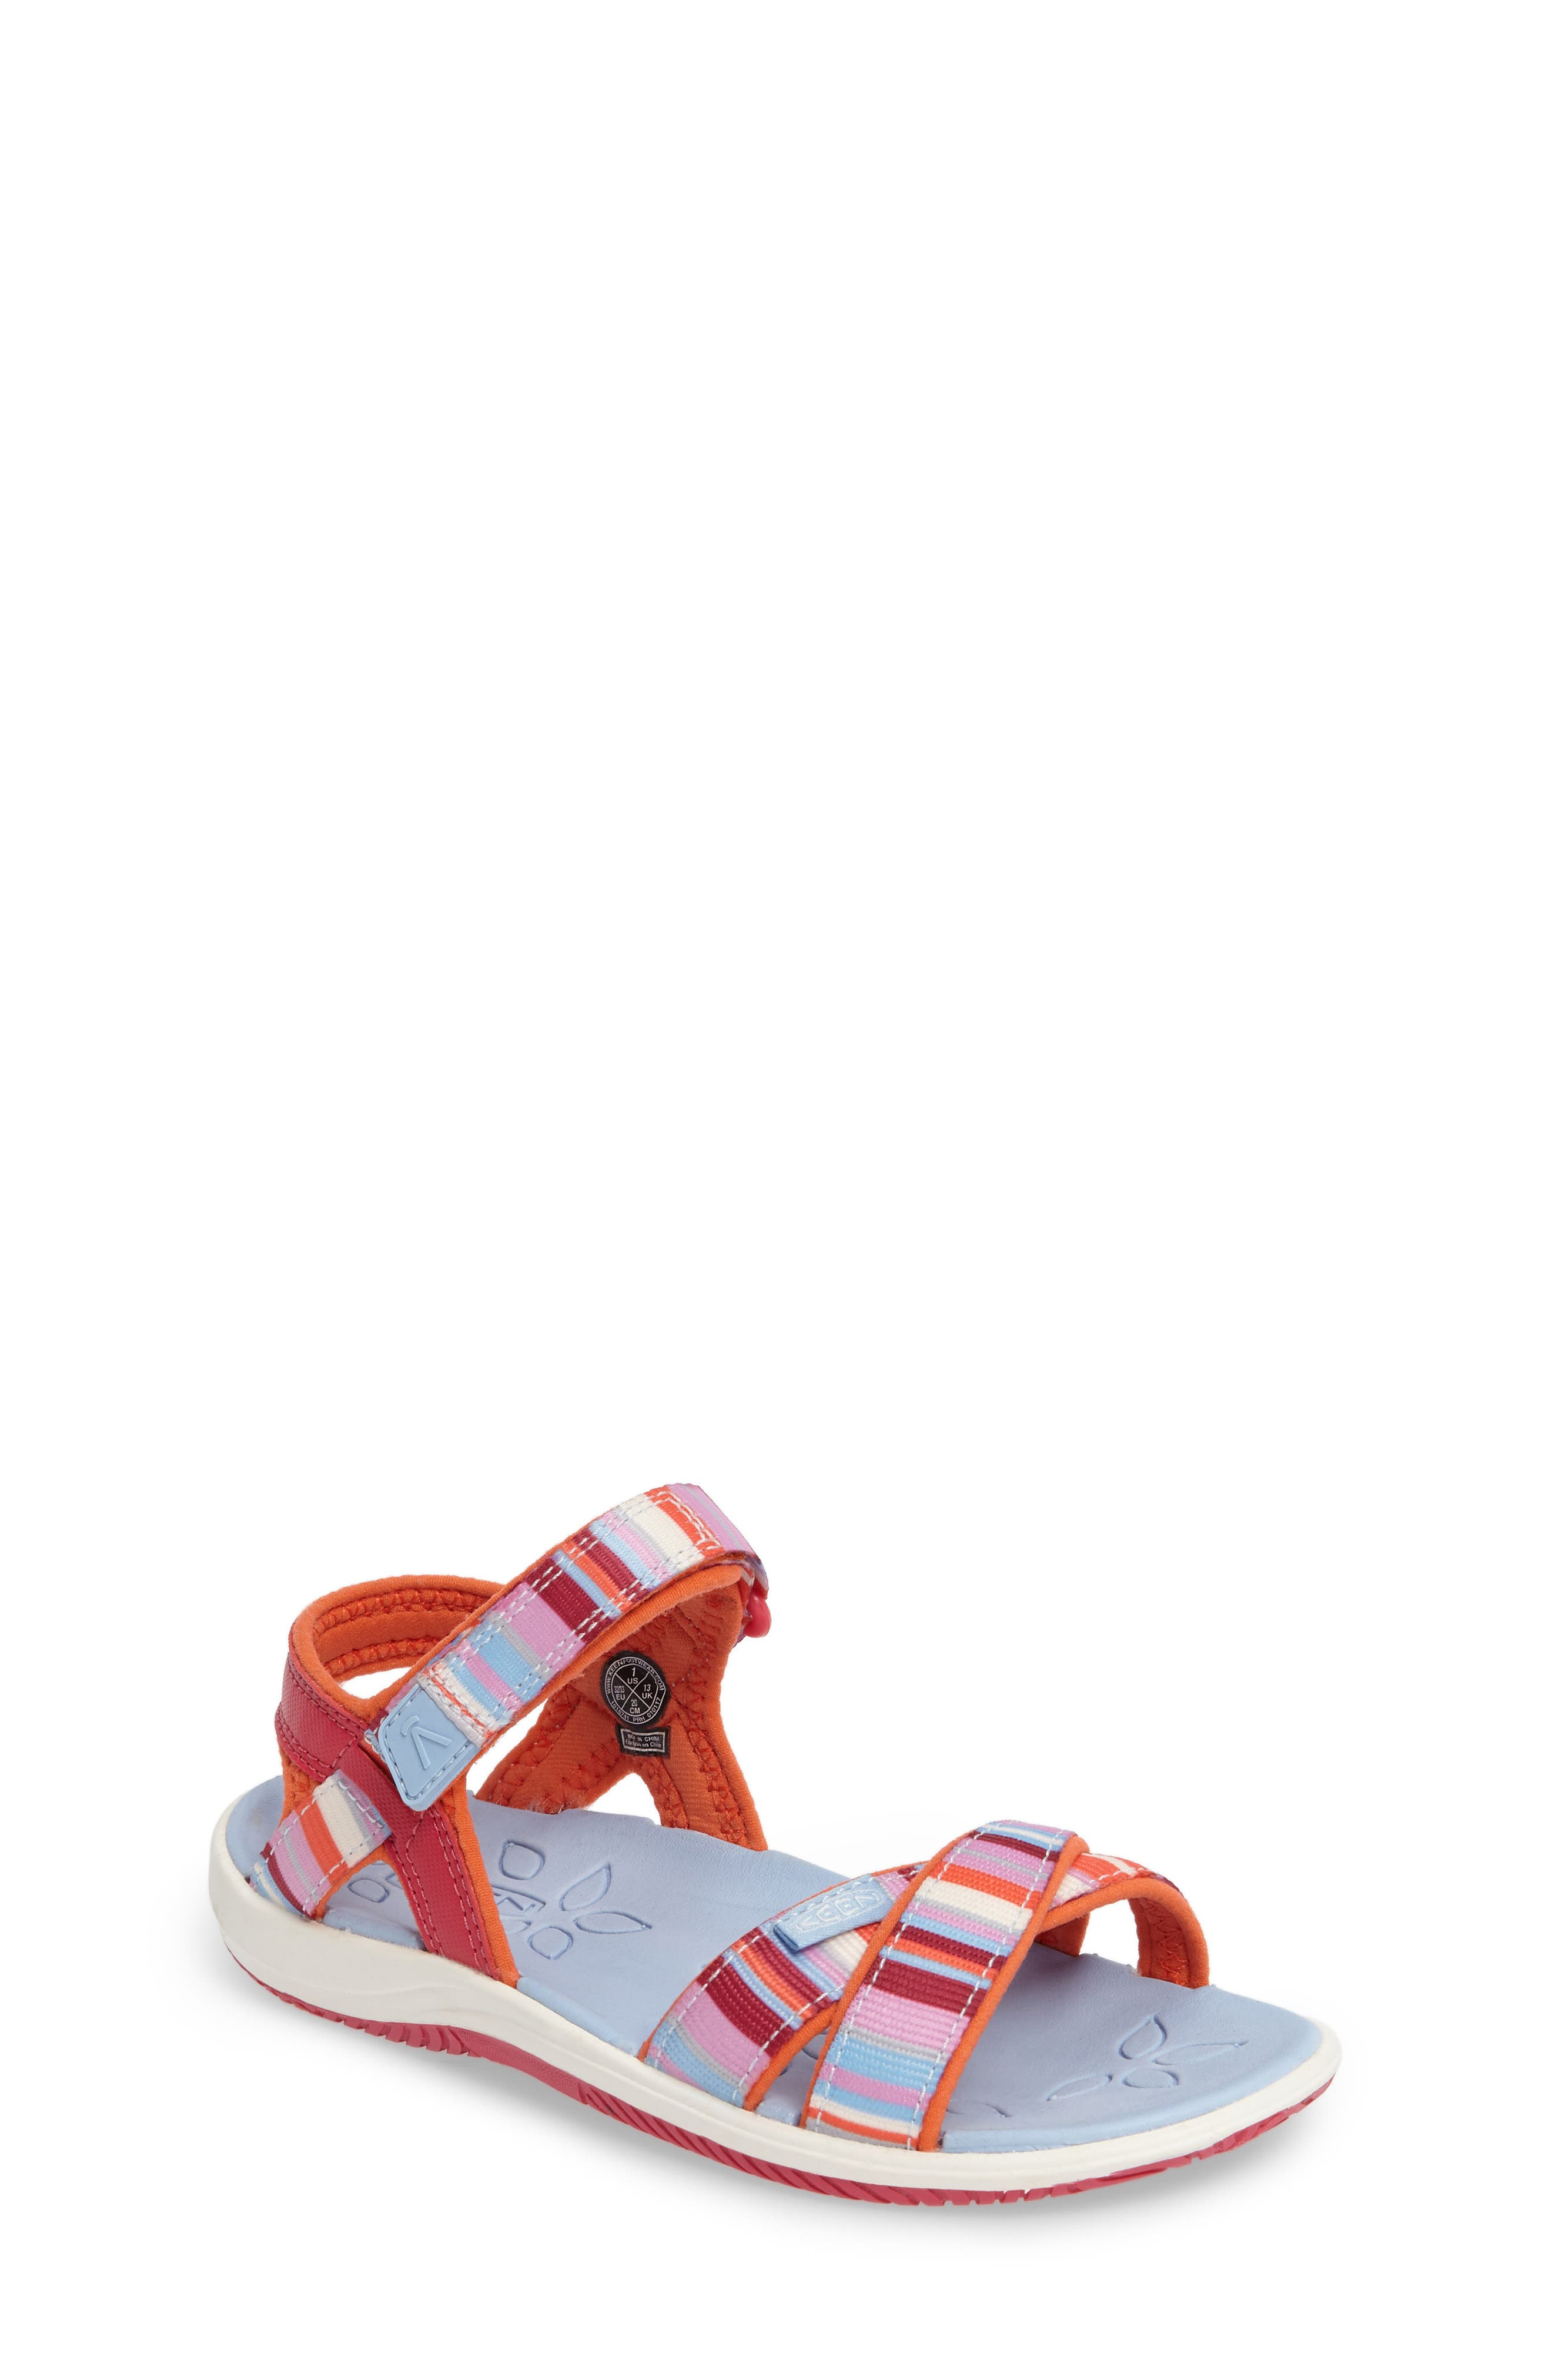 Keen 'Phoebe' Sandal (Toddler, Little Kid & Big Kid)